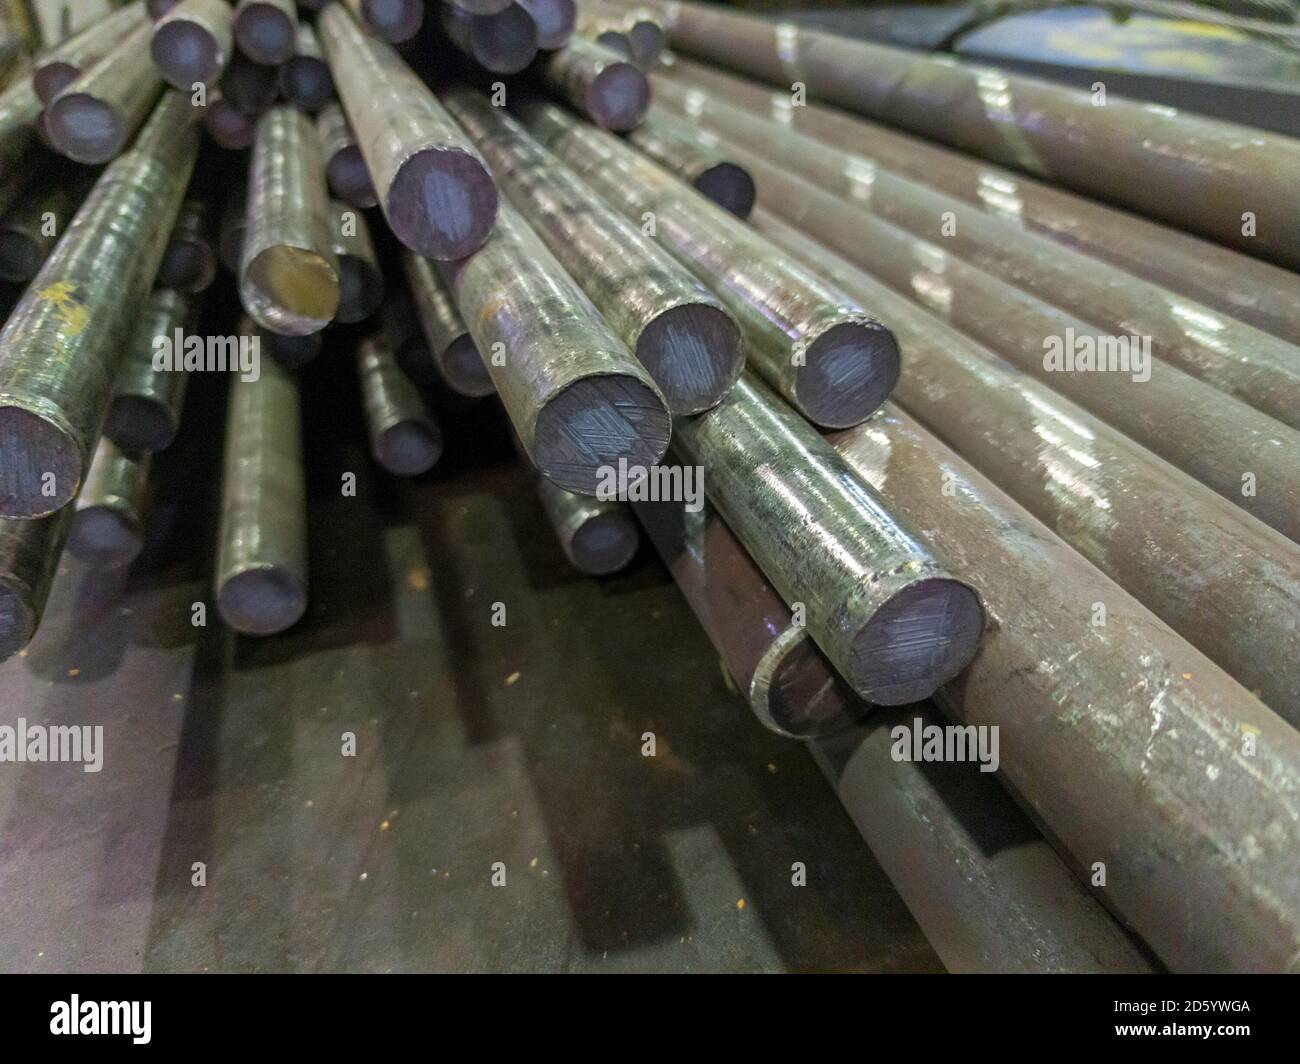 raw stainless steel rods storage - closeup with selective focus and background blur Stock Photo